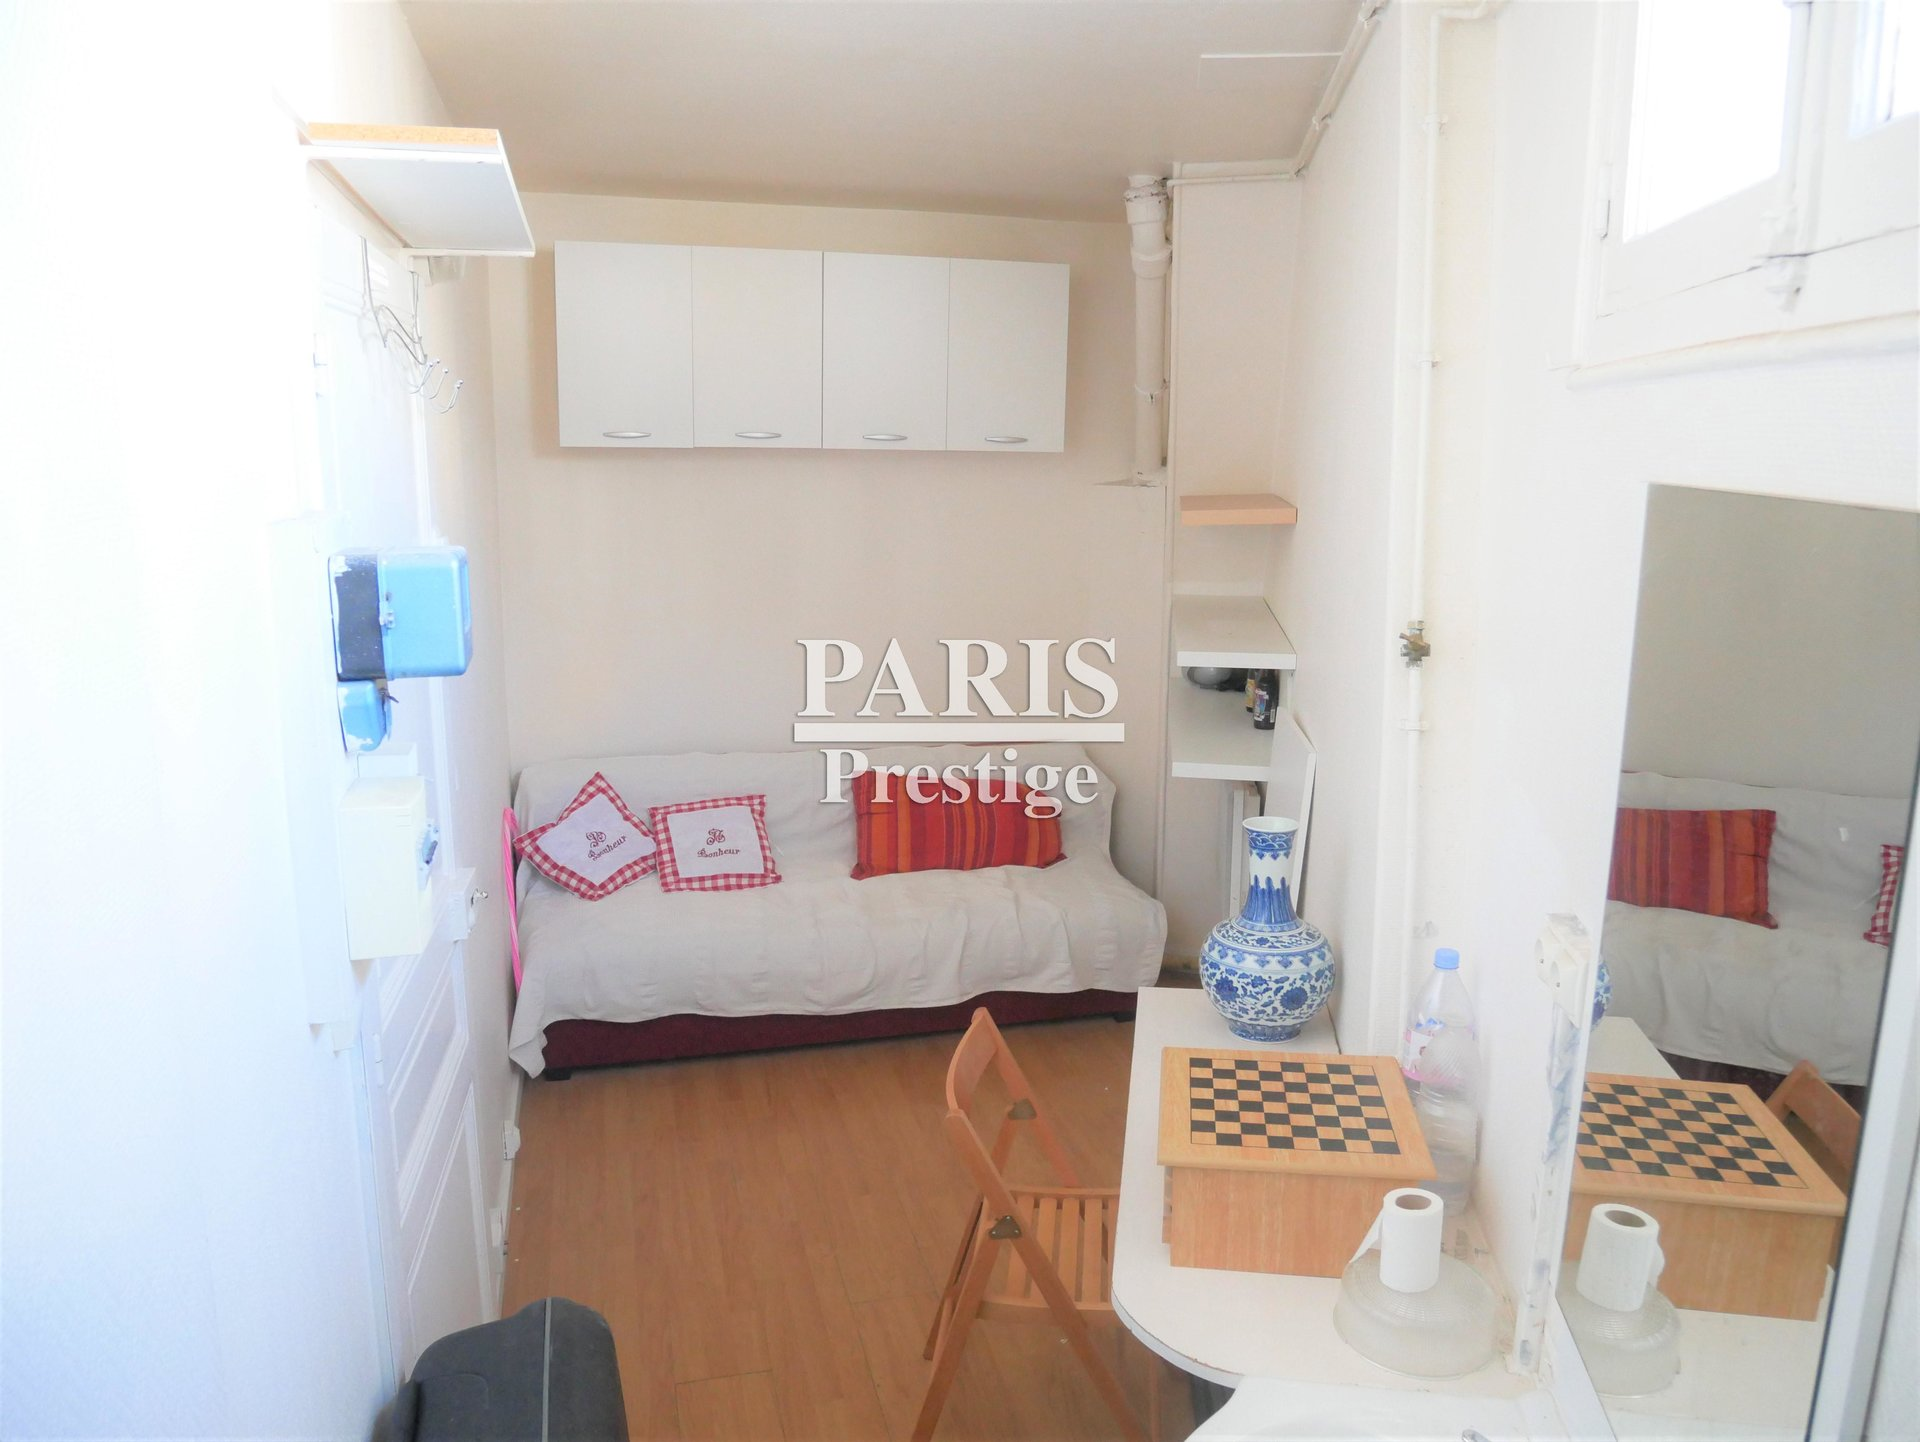 Sale Apartment - Paris 13th (Paris 13ème) Croulebarbe